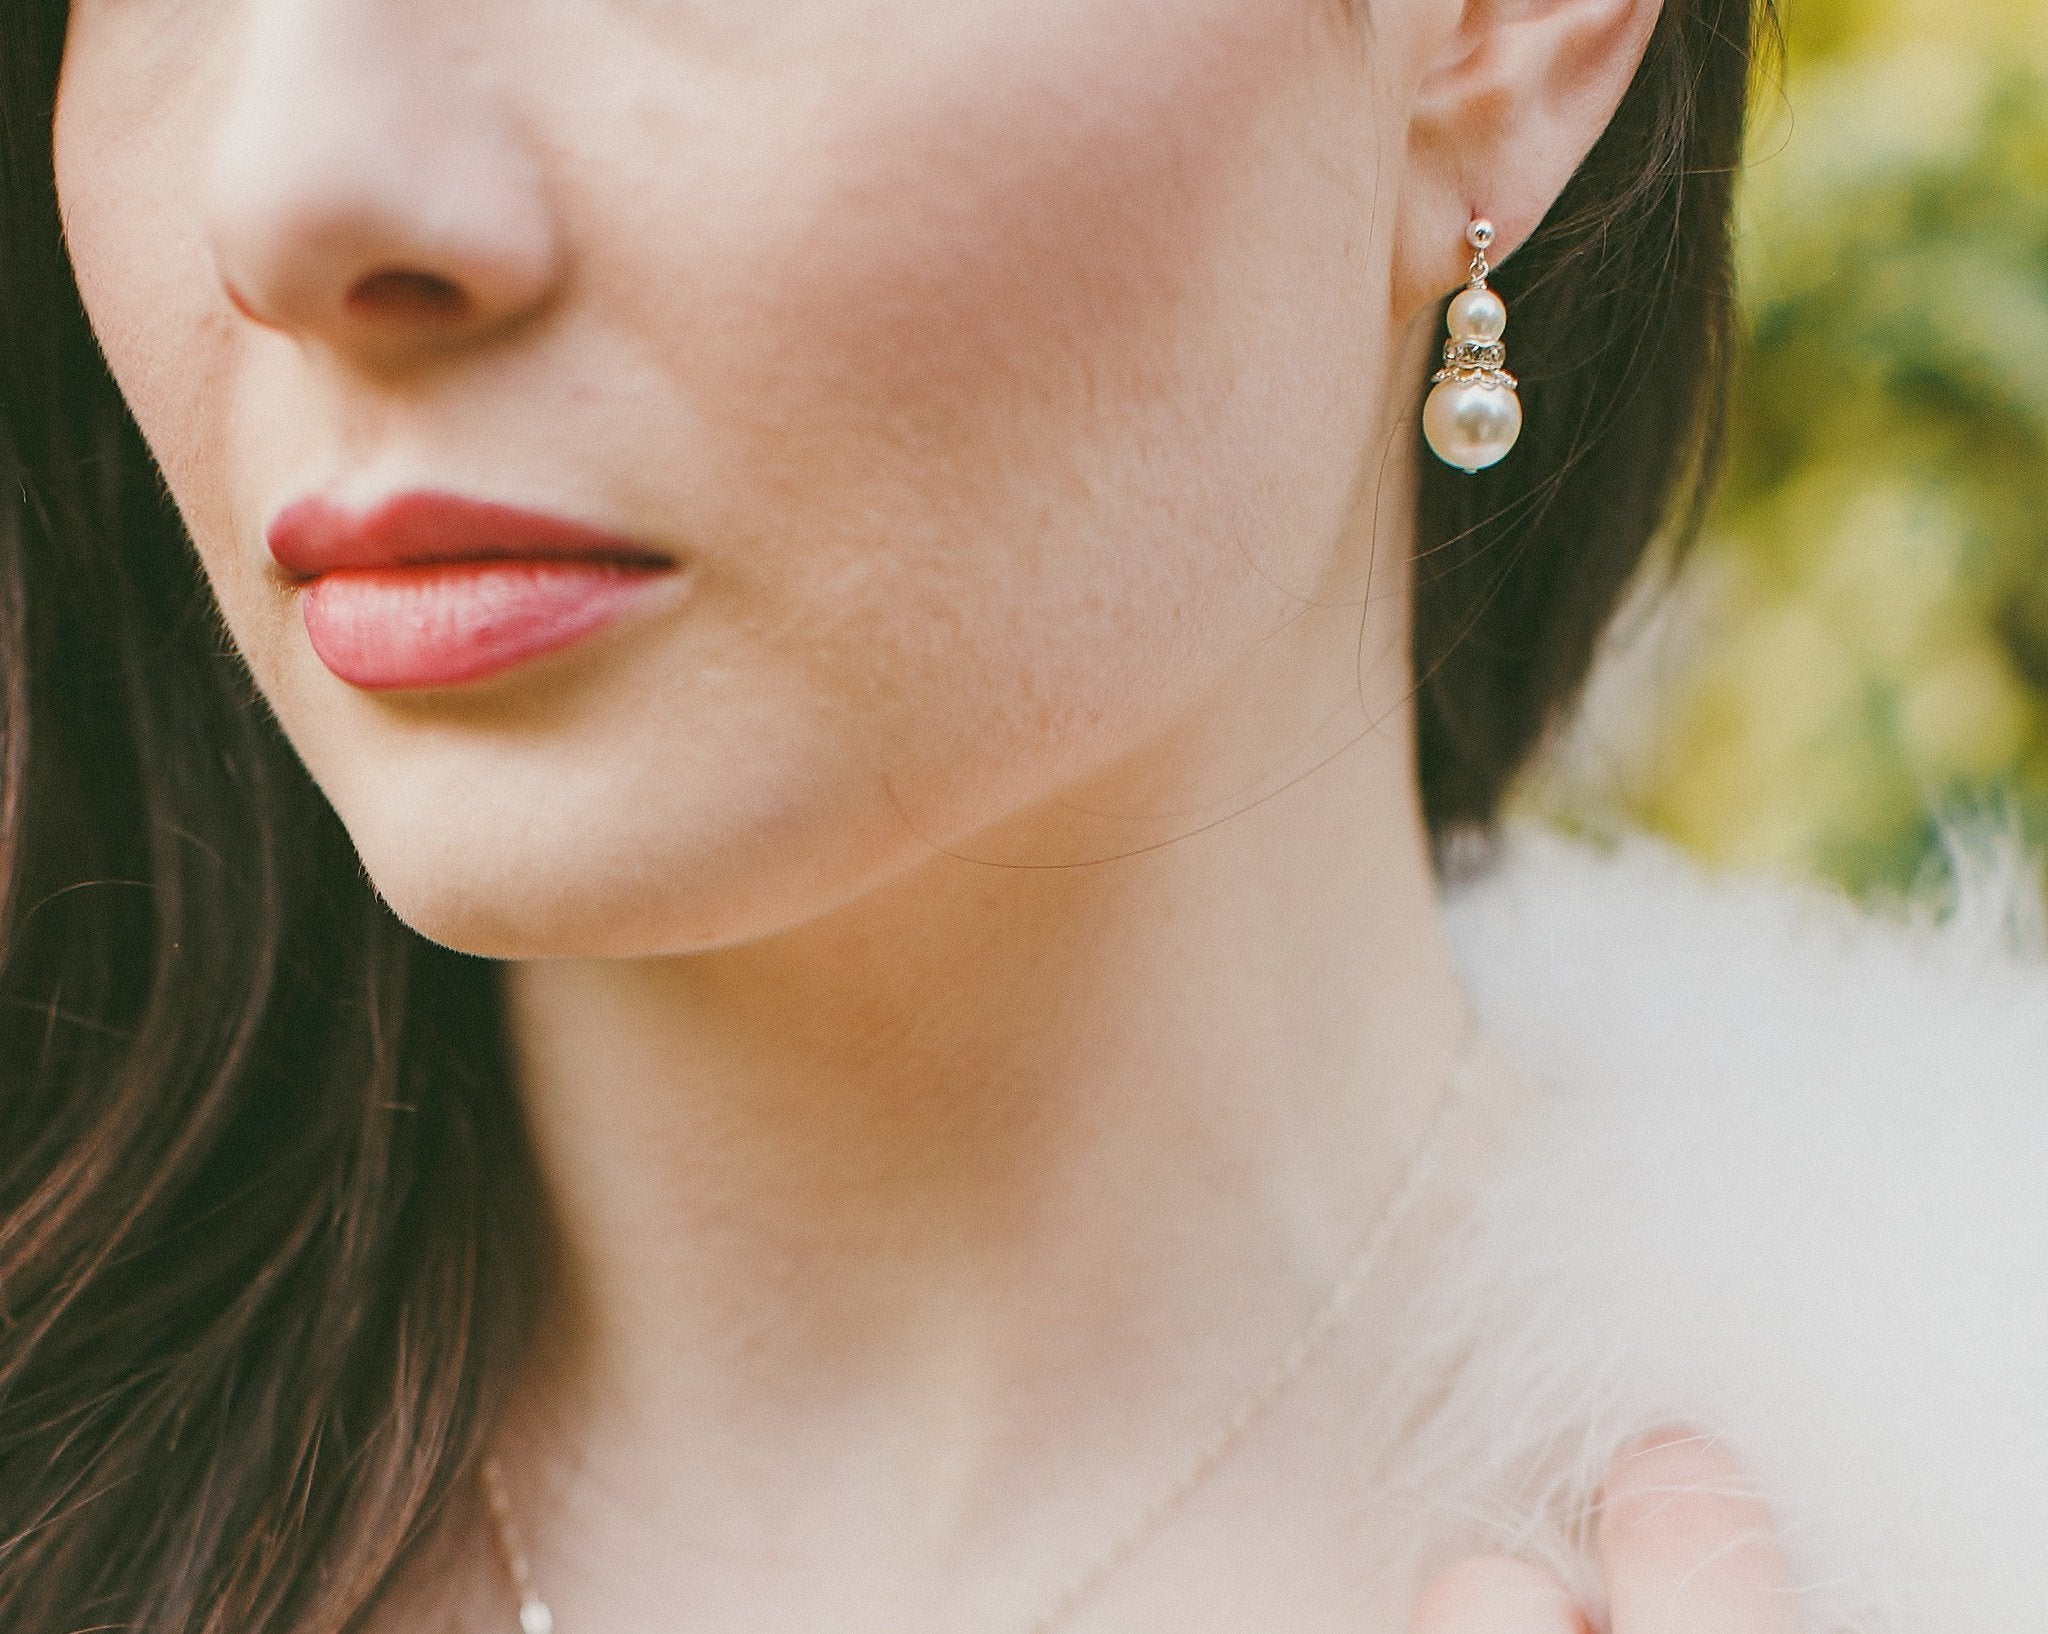 Wedding Earrings - Double Drop Pearl Earrings, As Seen In VIP Rugby Wedding, Nicole